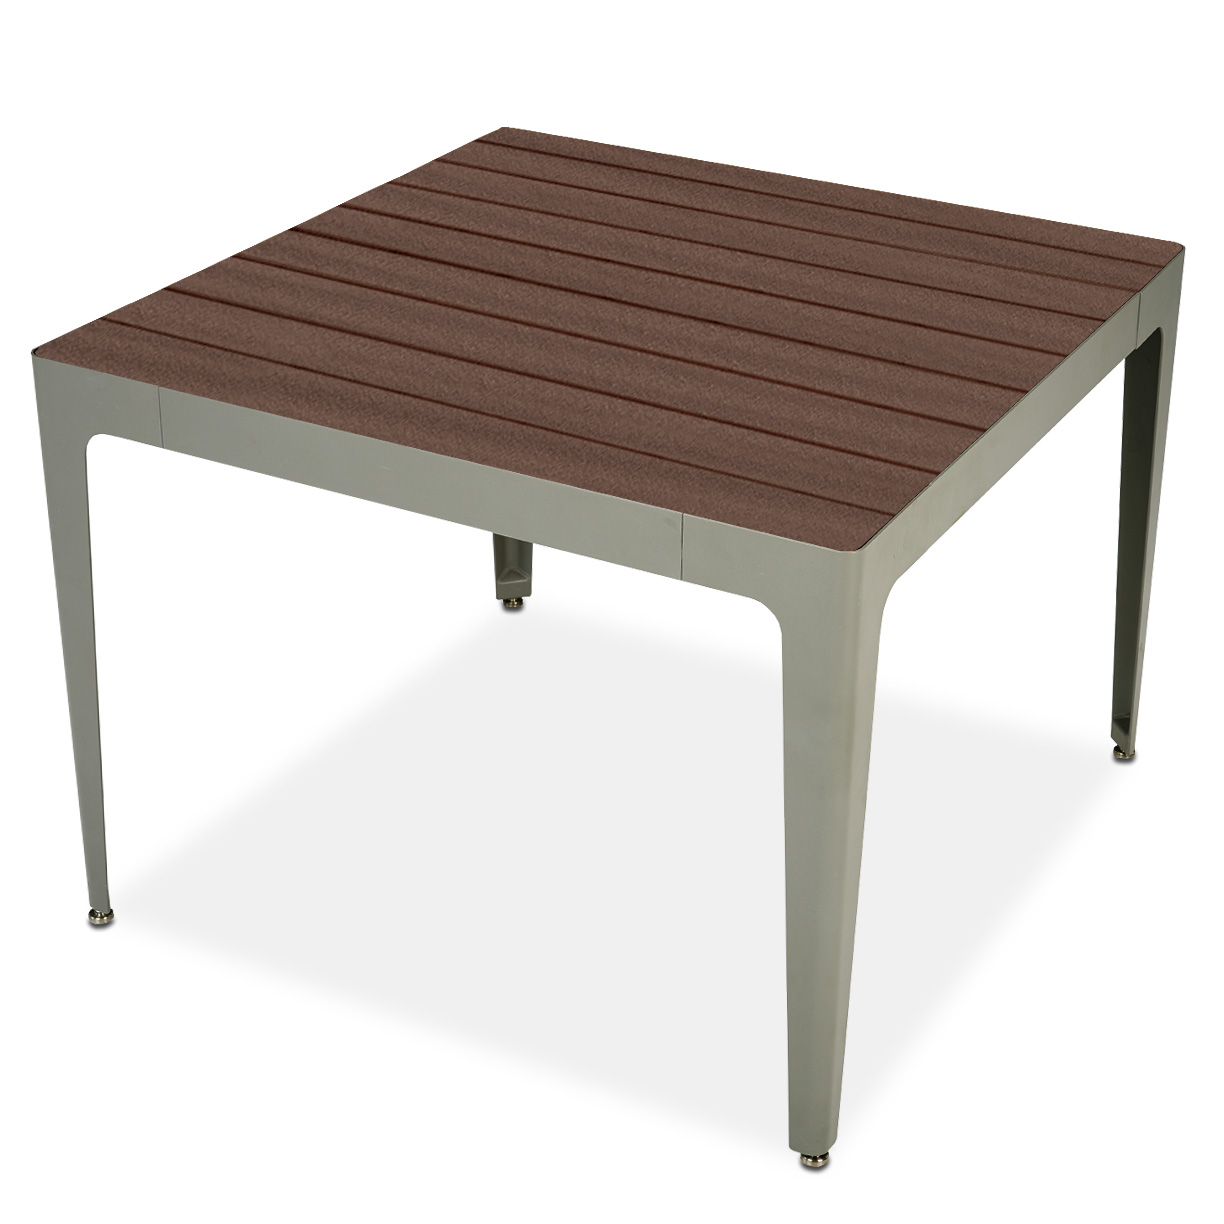 MIX2920R  Mixx Collection Square Recycled Plastic Table